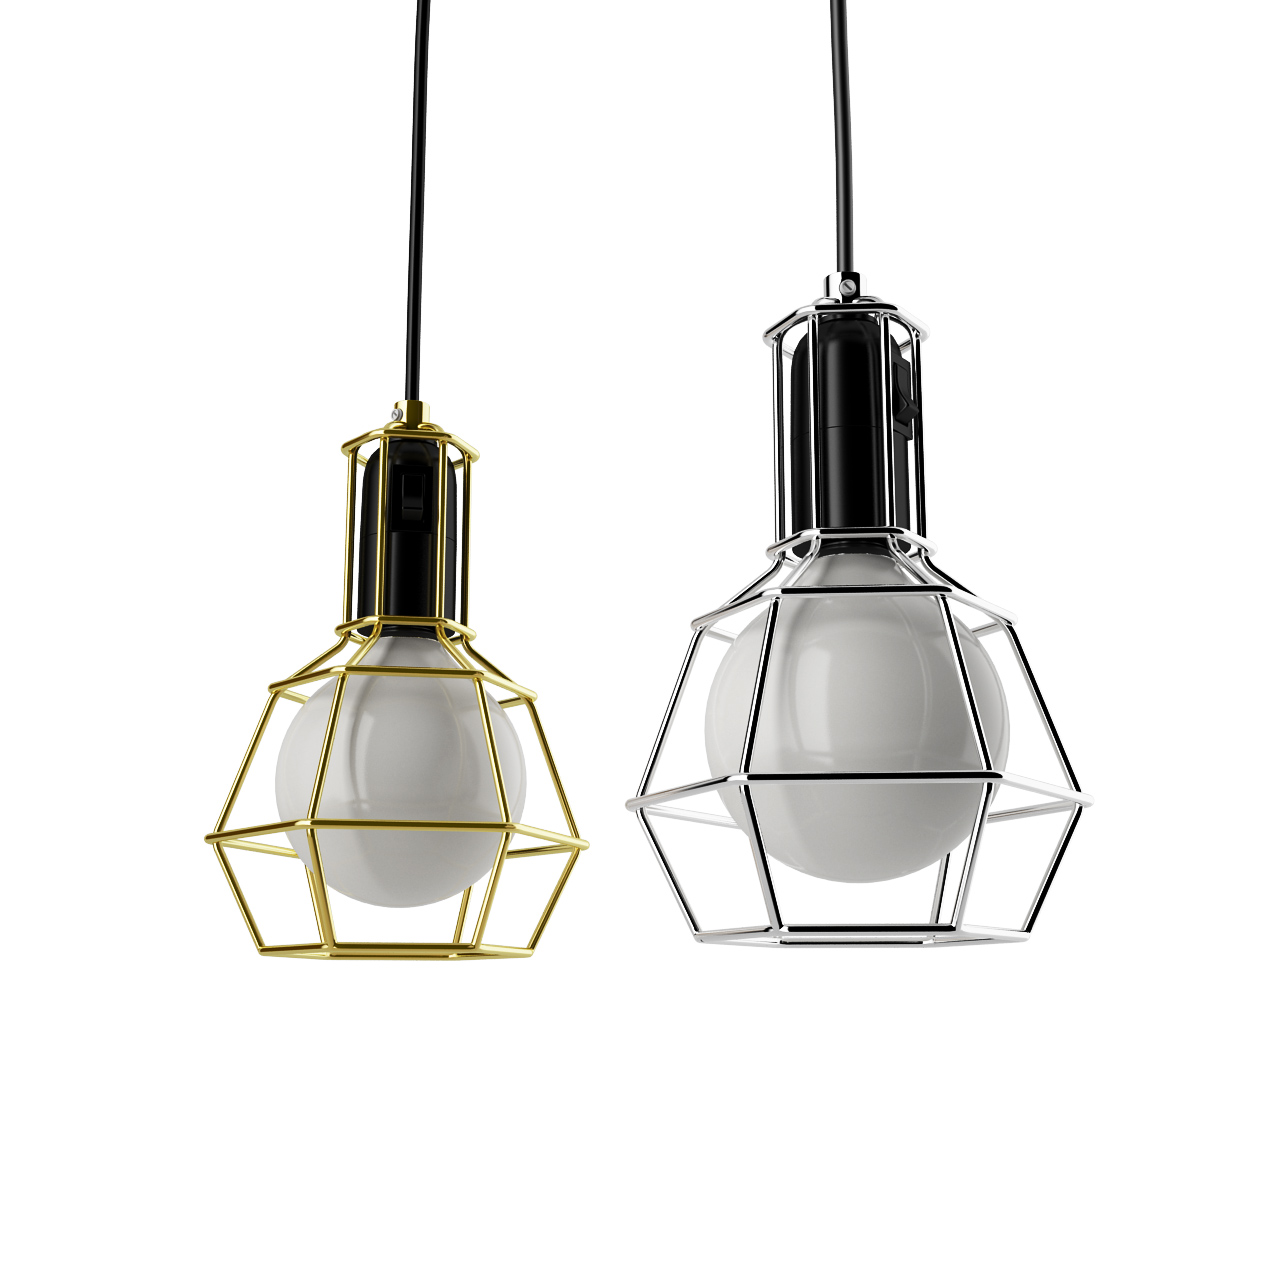 Work Pendant Lamp by Design House Stockholm - Dimensiva